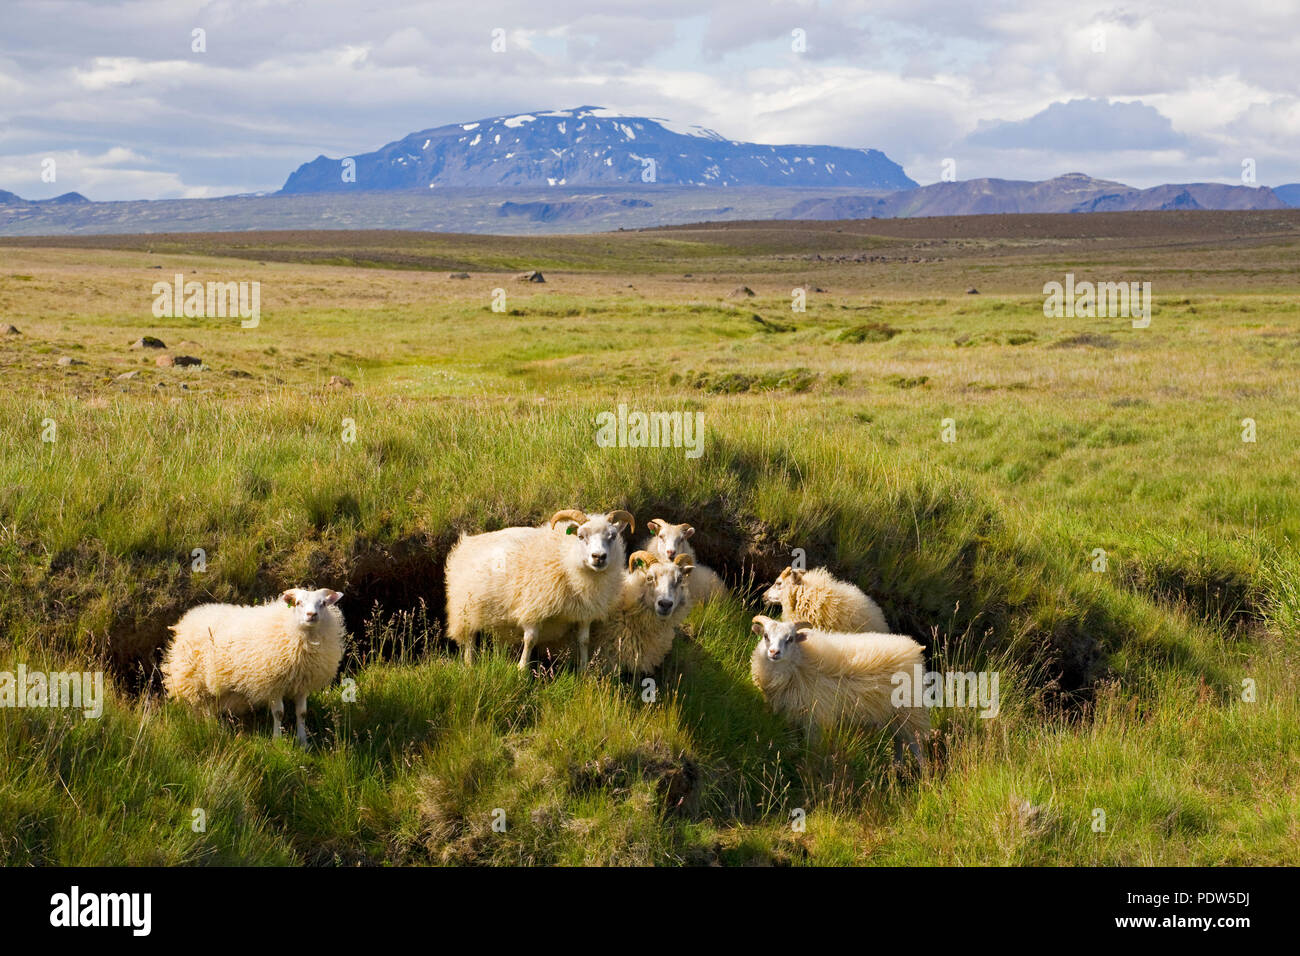 Icelandic Sheep, wooly in their unsheared summer wool, in a meadow pasture on the glacial plains near Gullfoss in south Iceland. - Stock Image